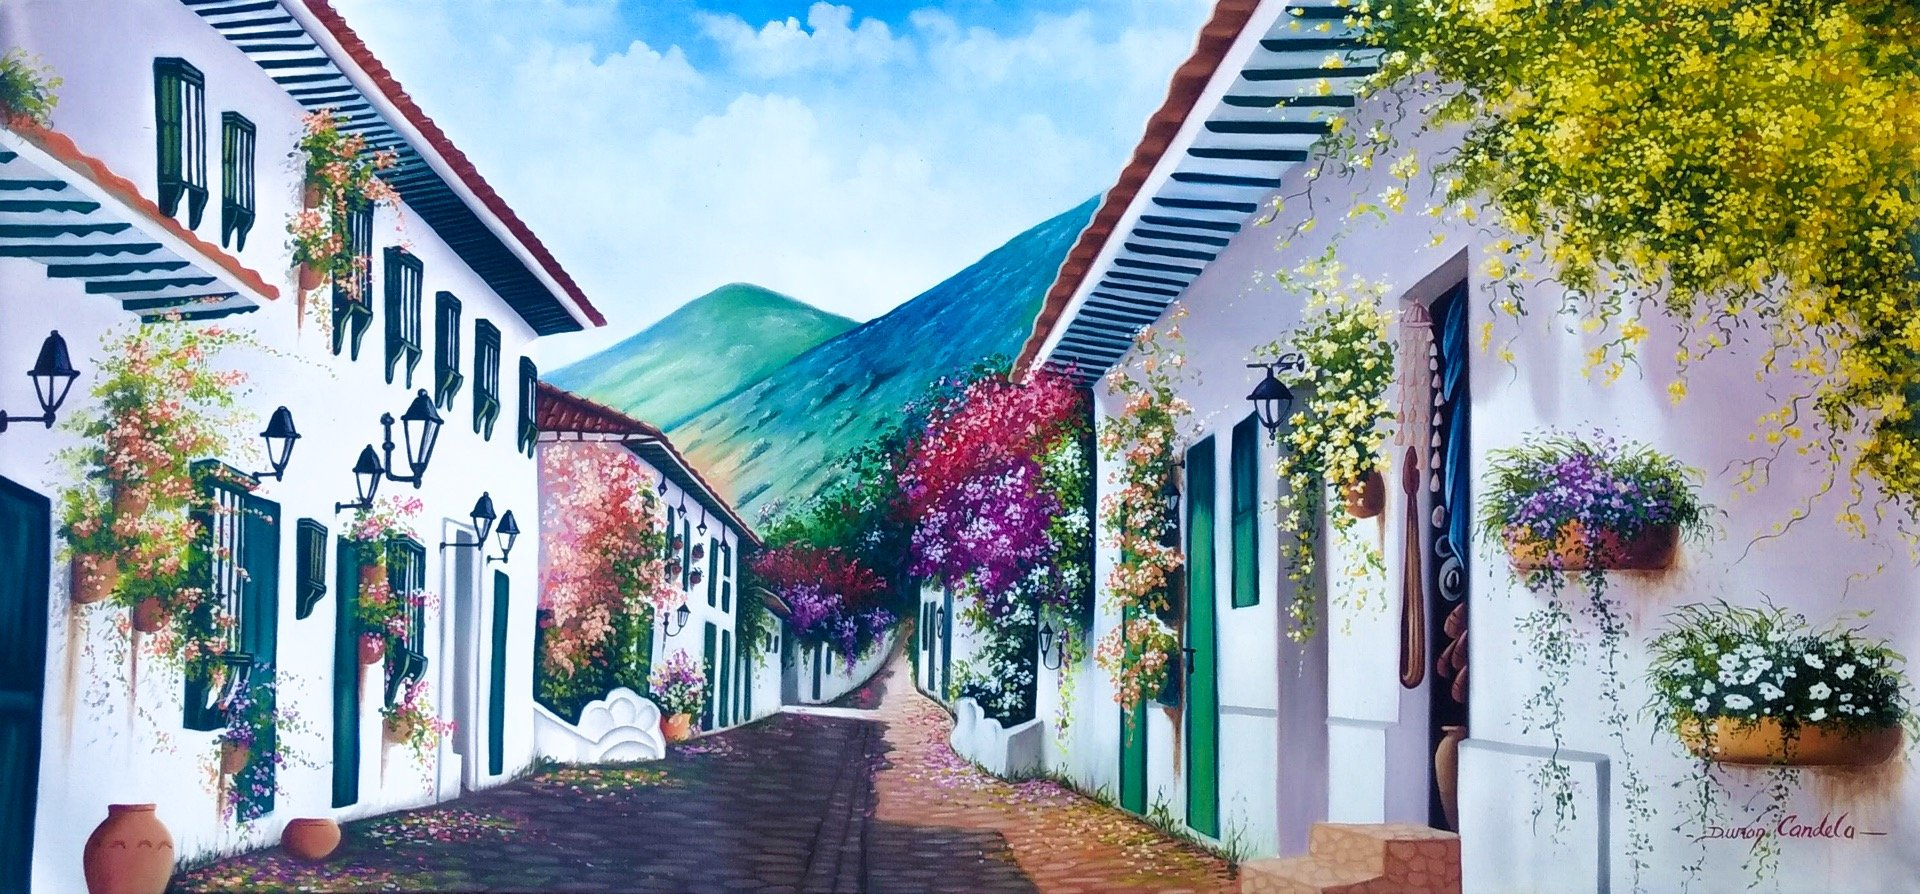 Original Oil Painting on Canvas depicting a colorful colonial street of Villa de Leyva, Colombia